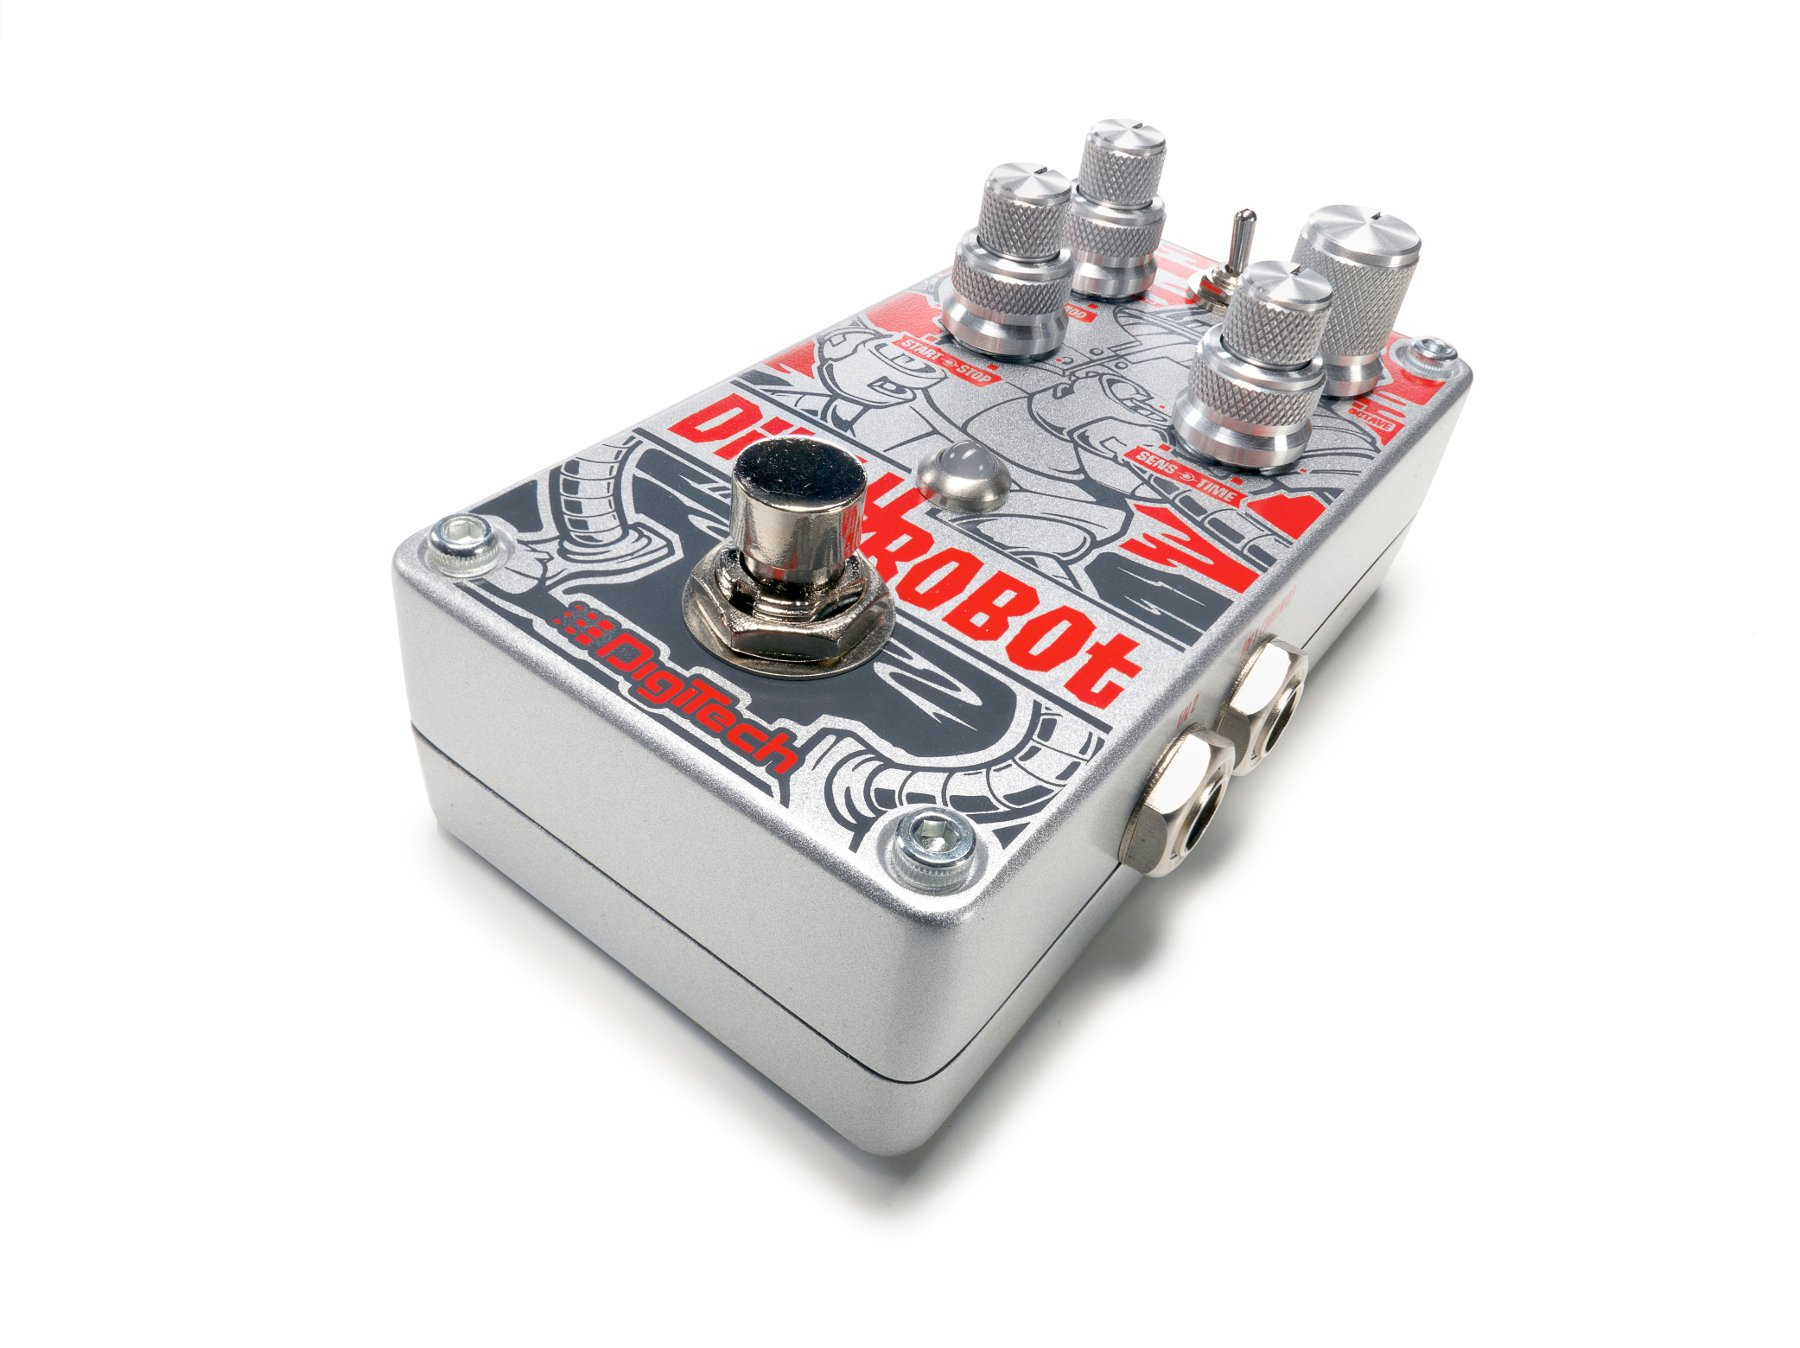 Stereo Mini-Synth Guitar Pedal